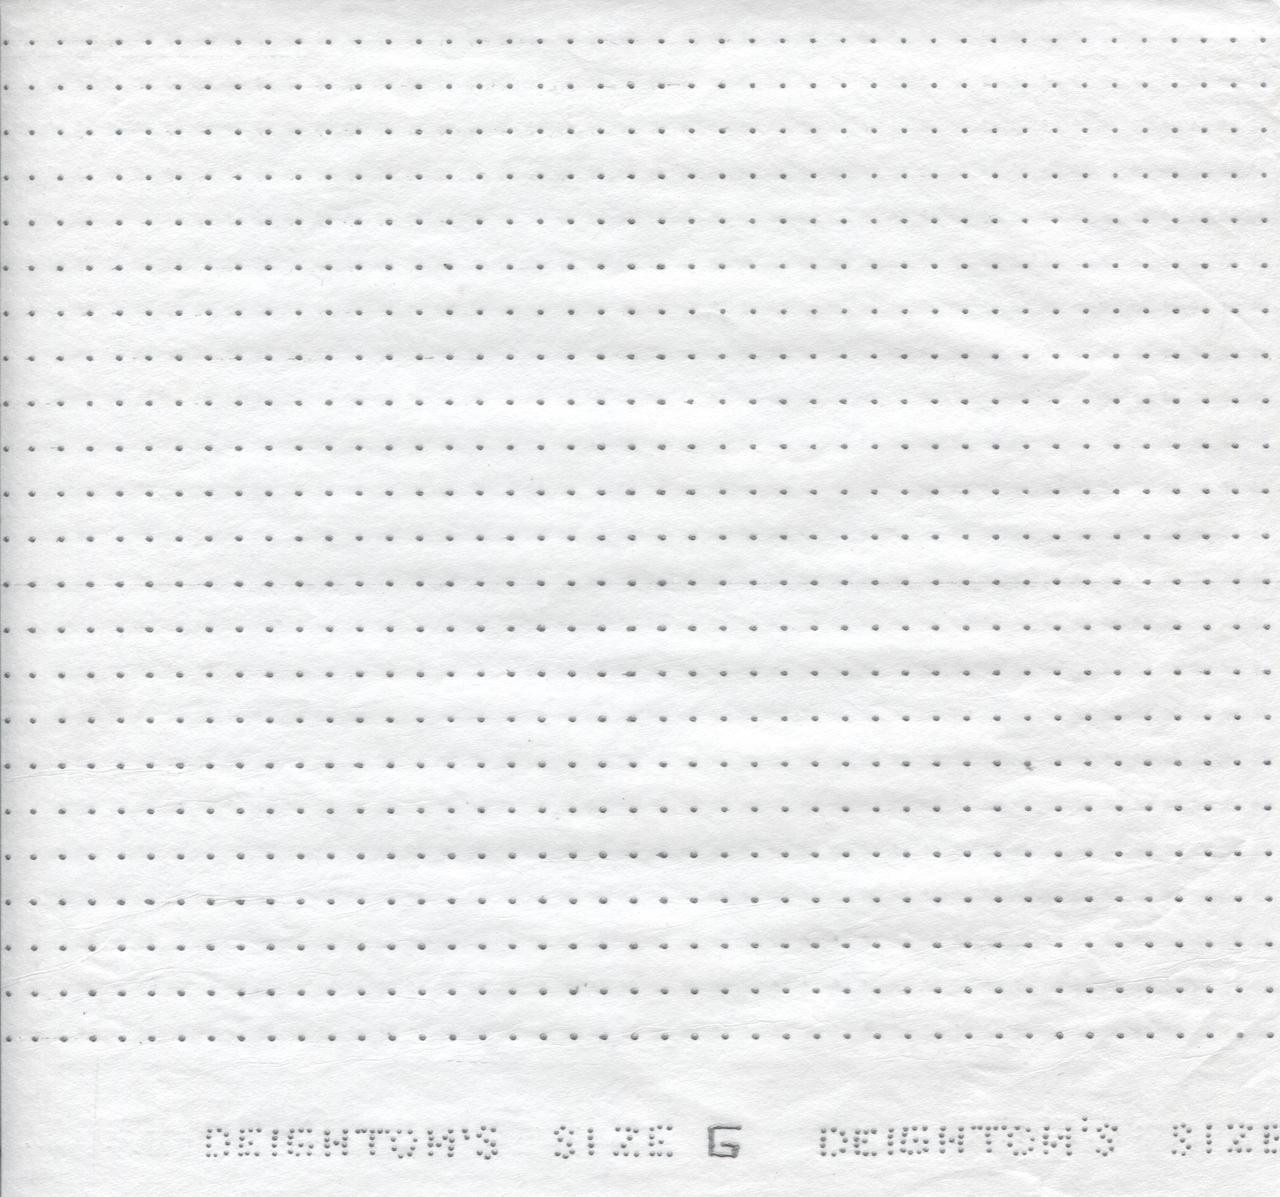 Smocking Transfer Dots - Size 'G' 5 mm x 7.5 mm - see video on how to use - one sheet in each pack - not designed to wash off